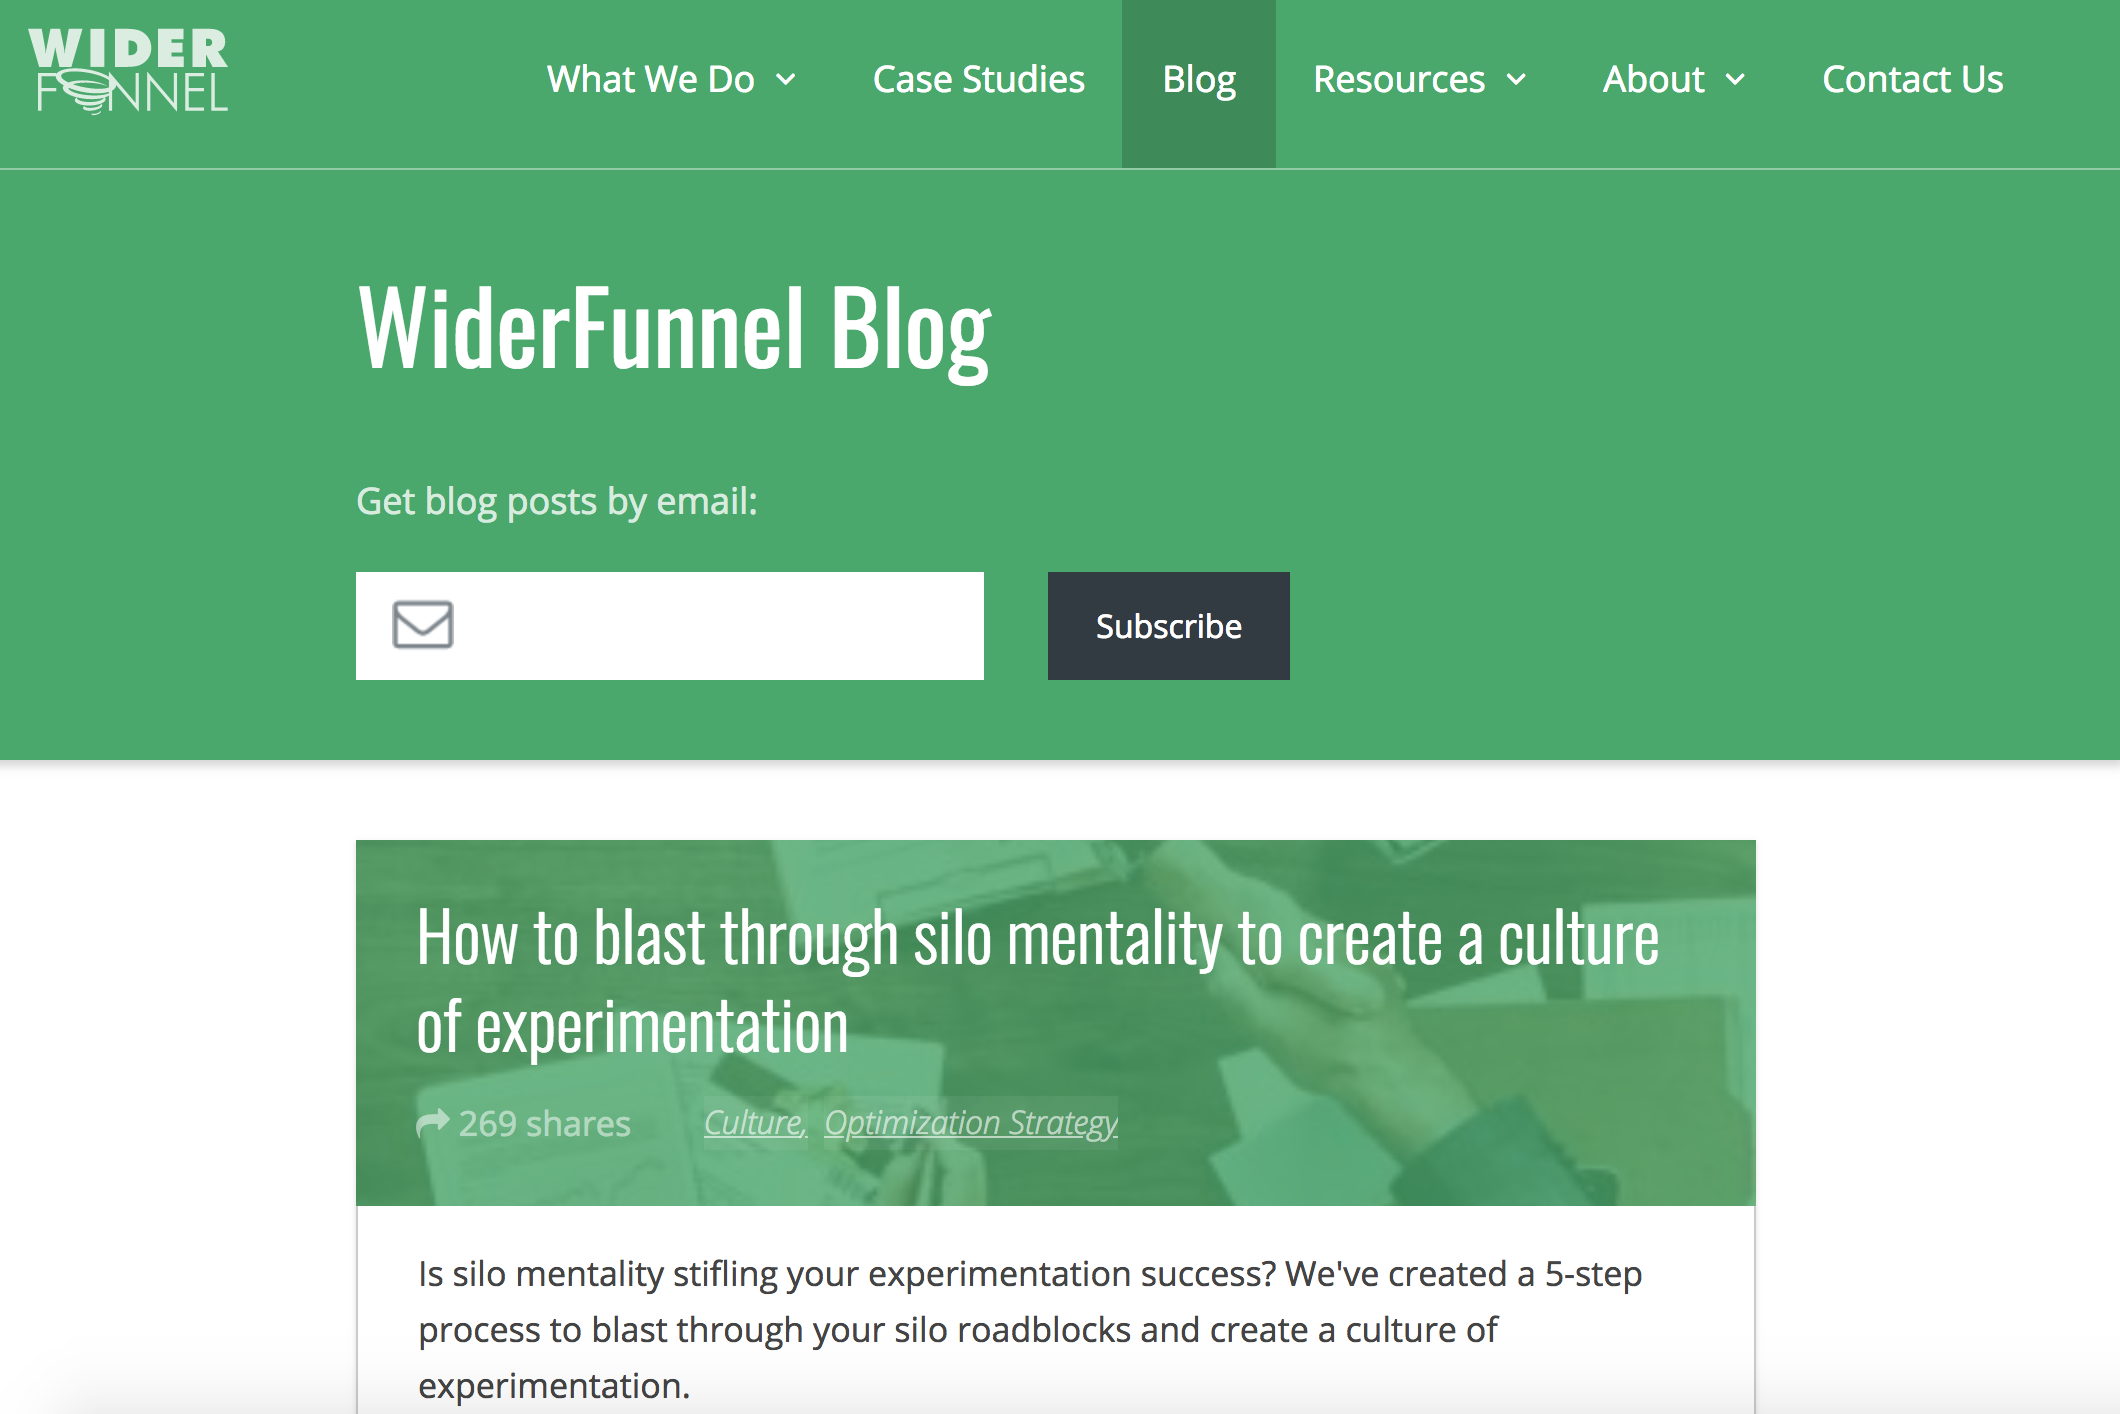 wider_funnel_blog